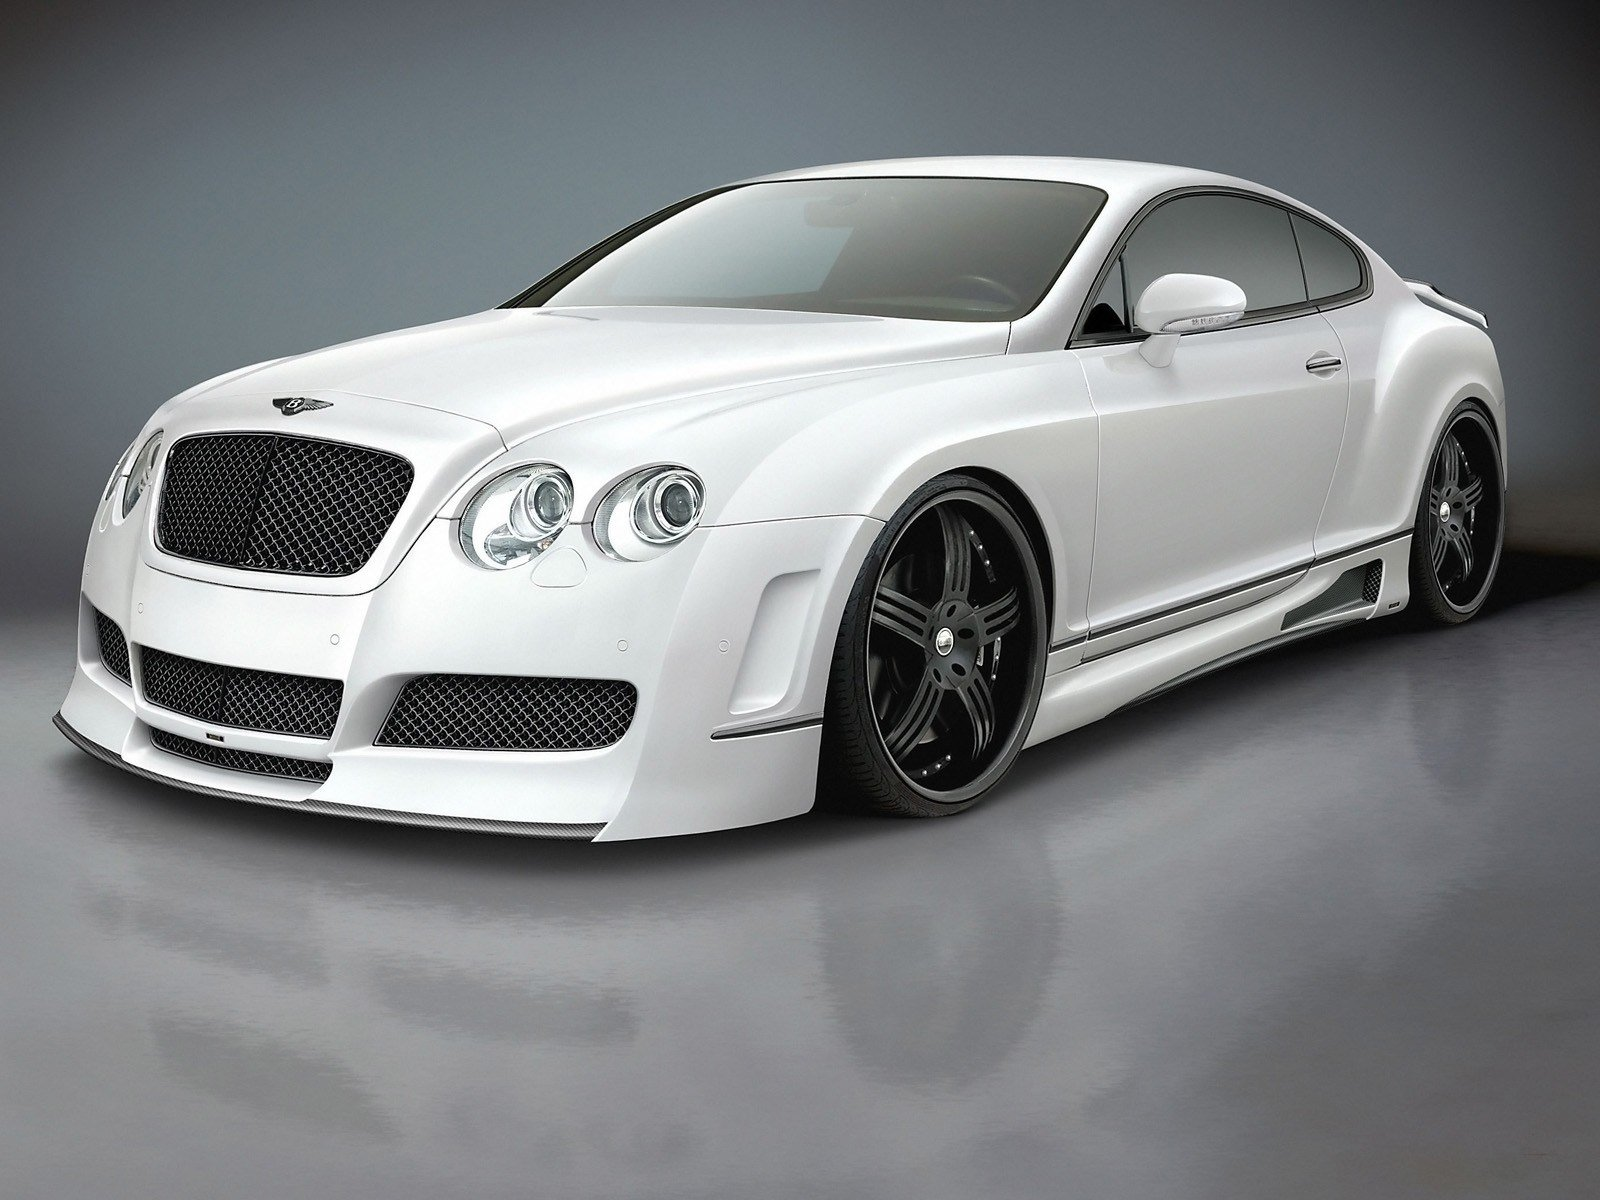 Latest Desktop Bentley Cars Images Dowload Free Download